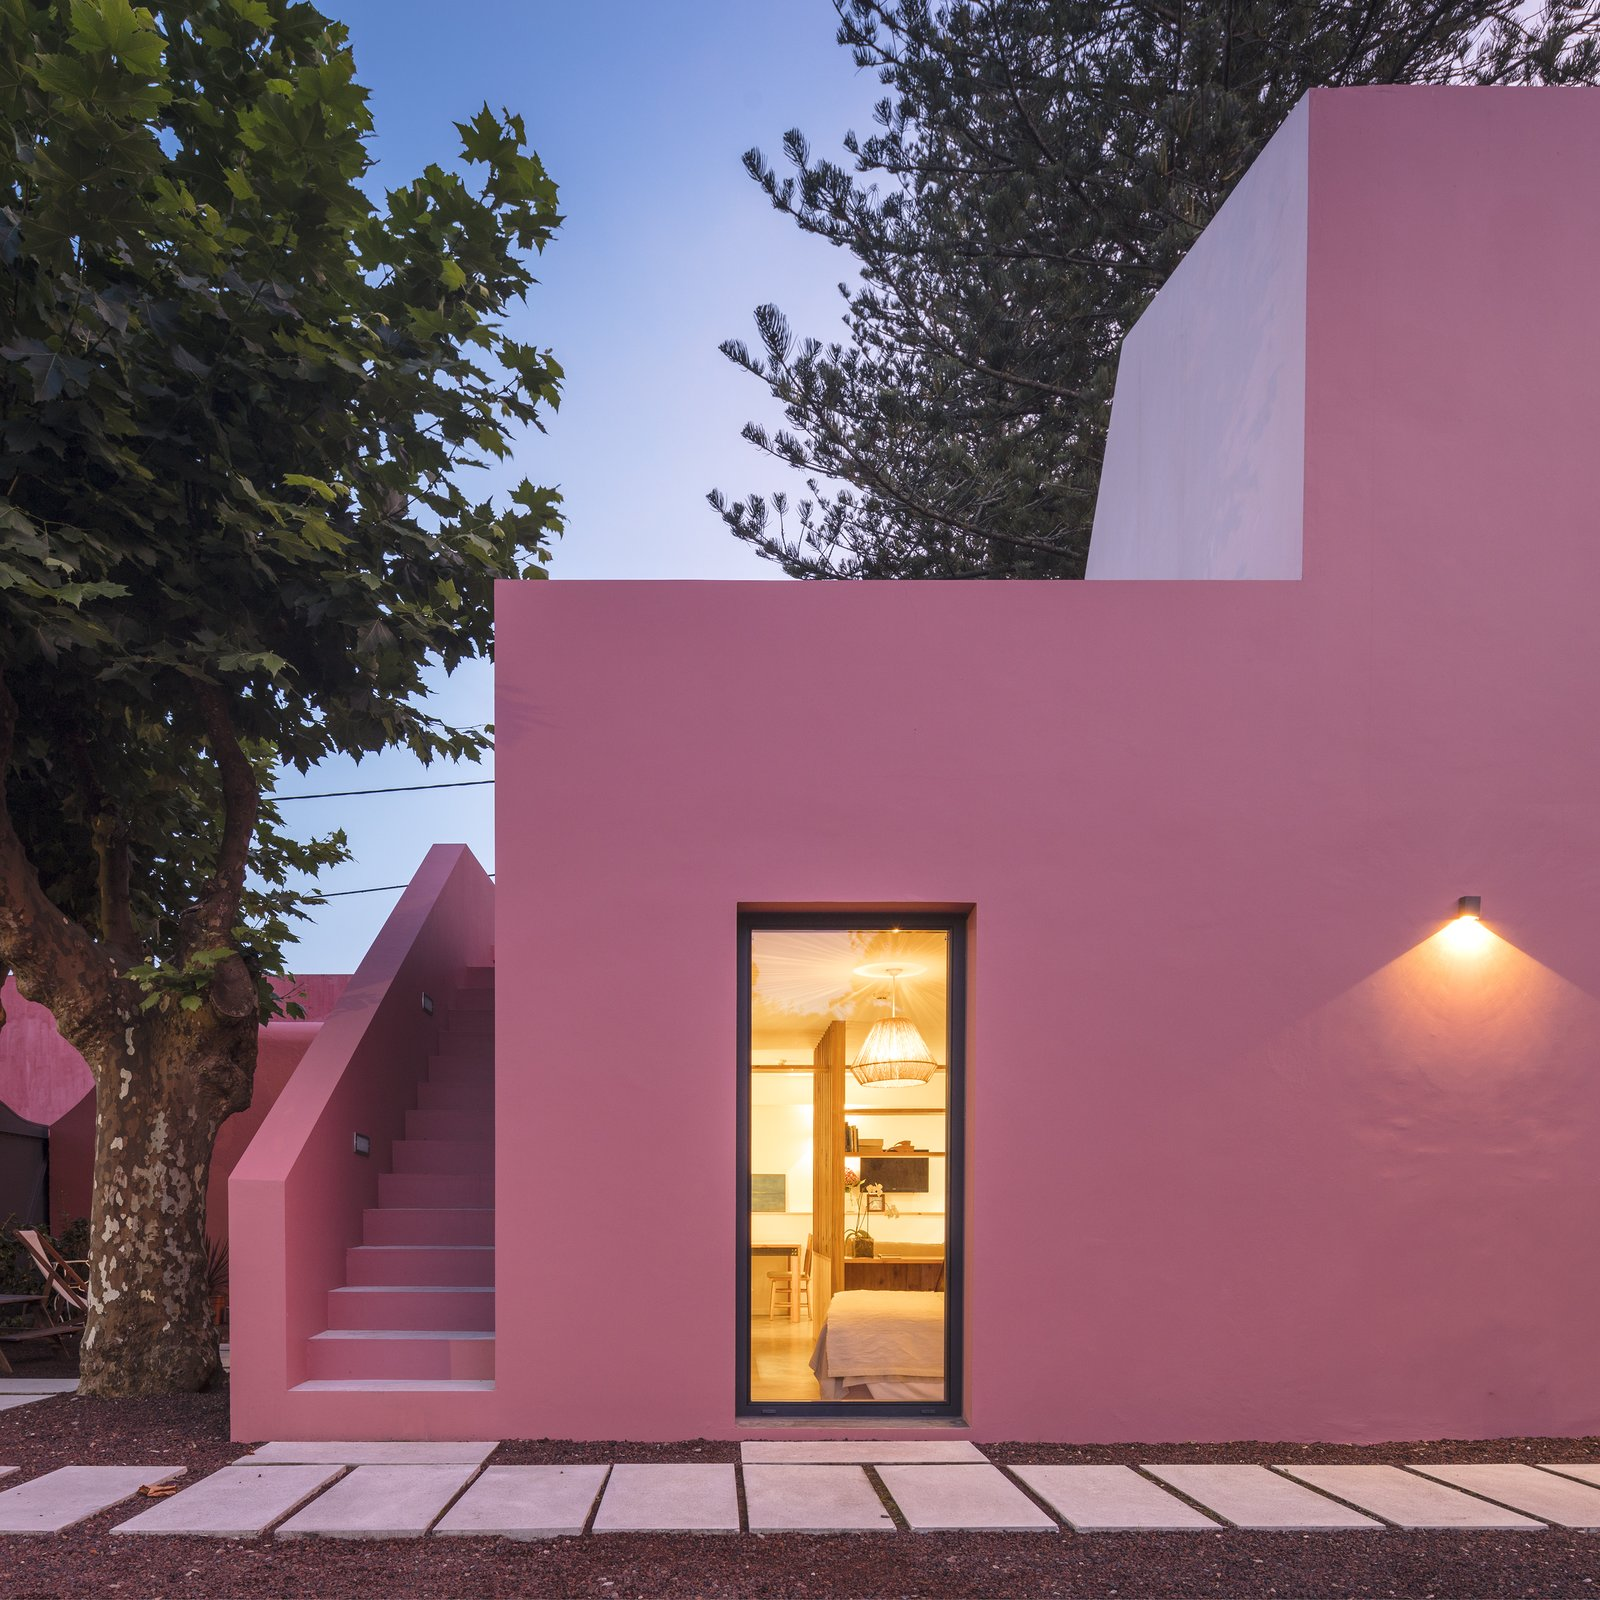 Exterior and Stucco Siding Material  Photos from Pink House